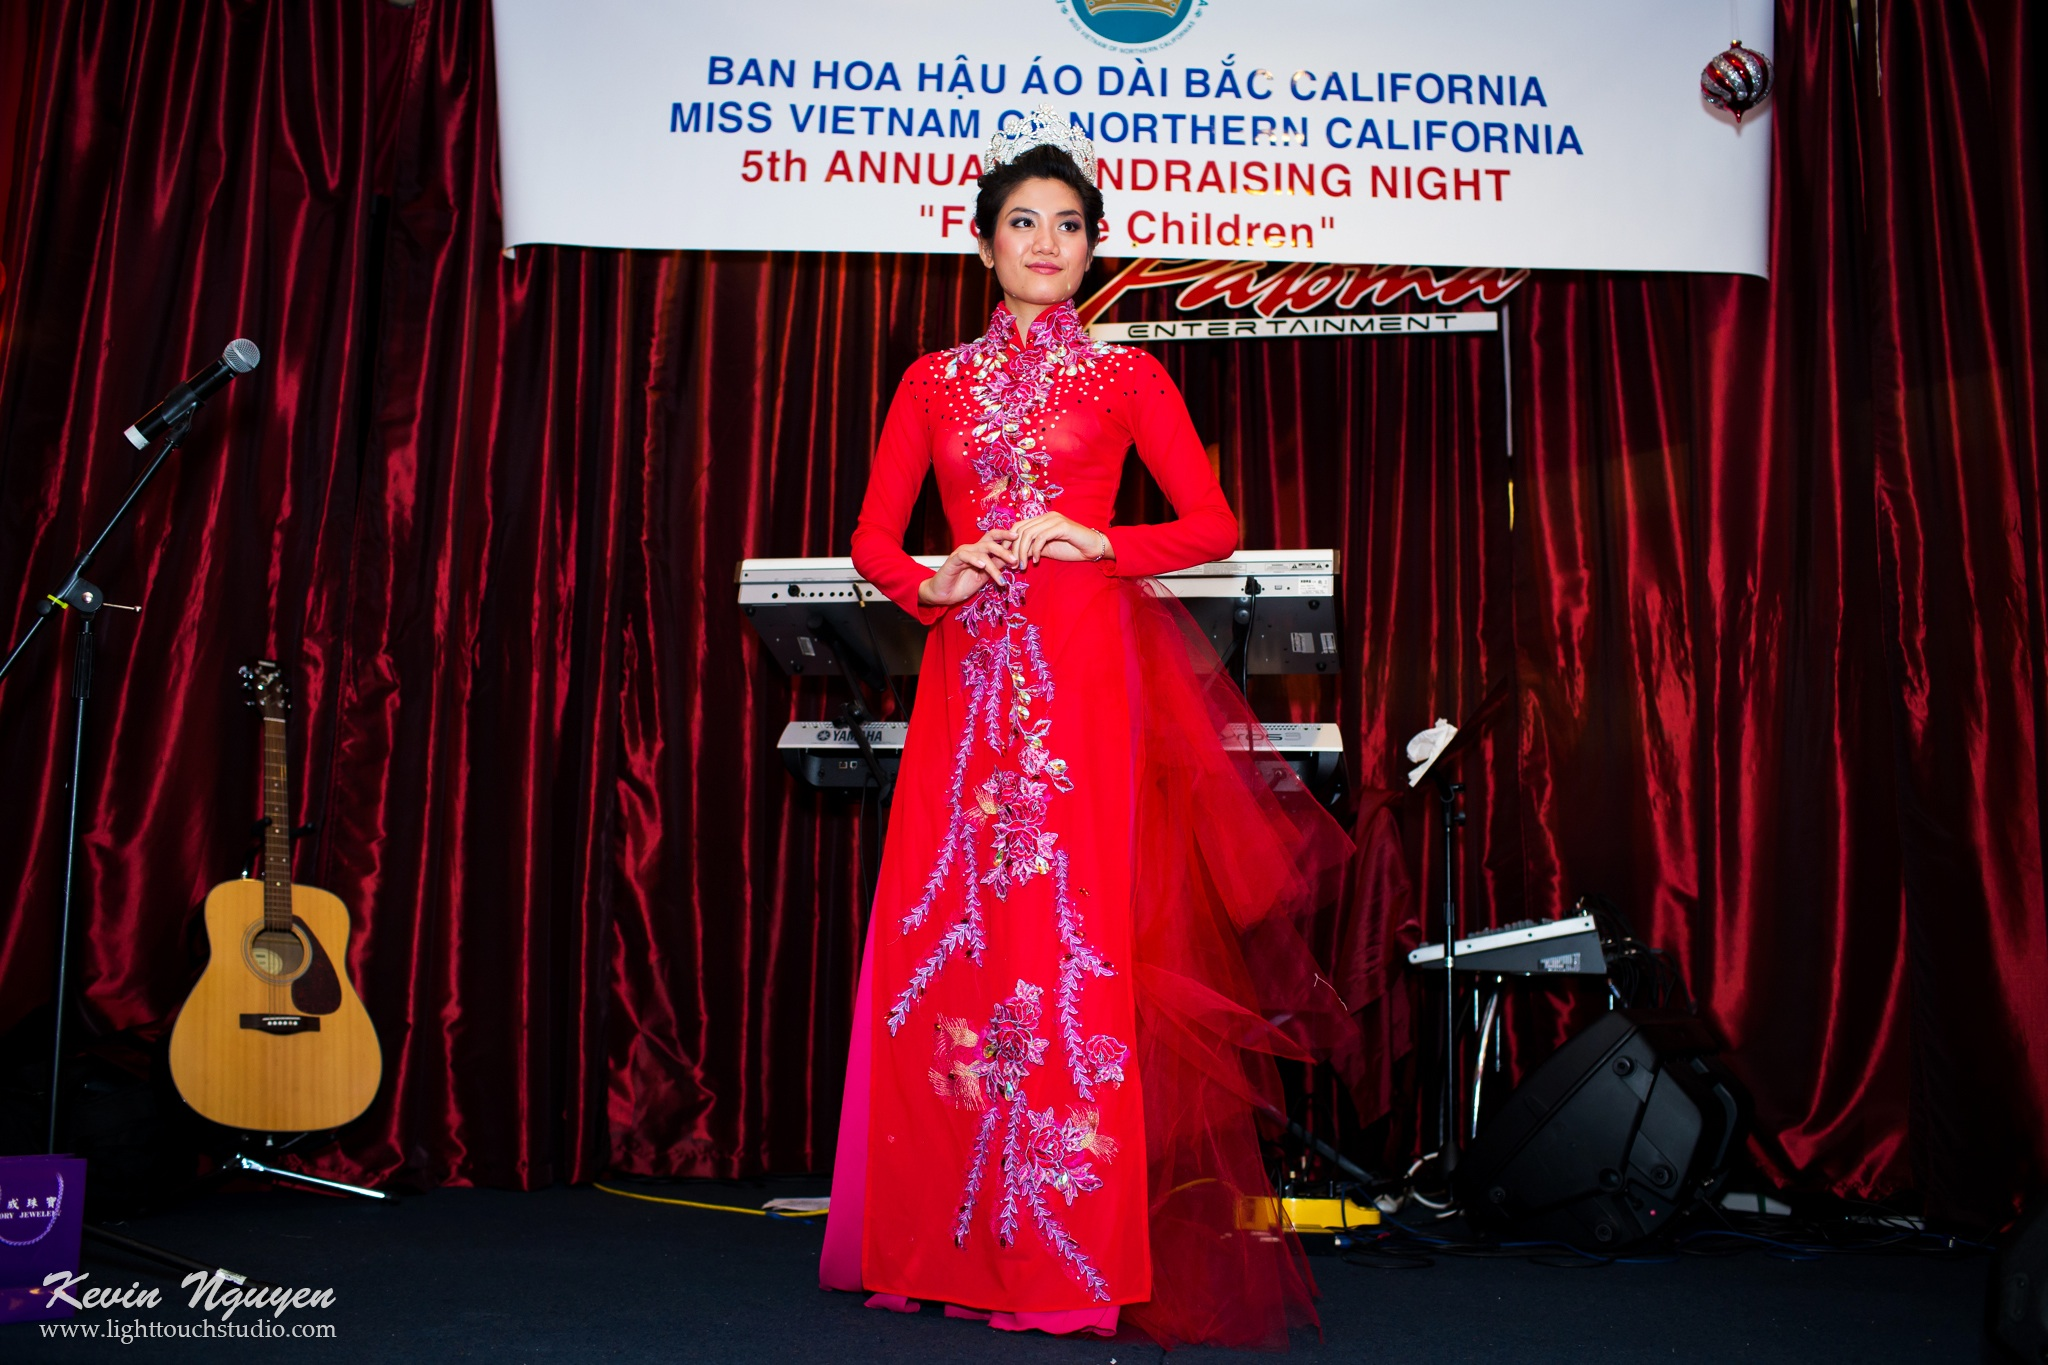 Charity Fundraiser 2012 - For the Children - Paloma, San Jose - Image 072